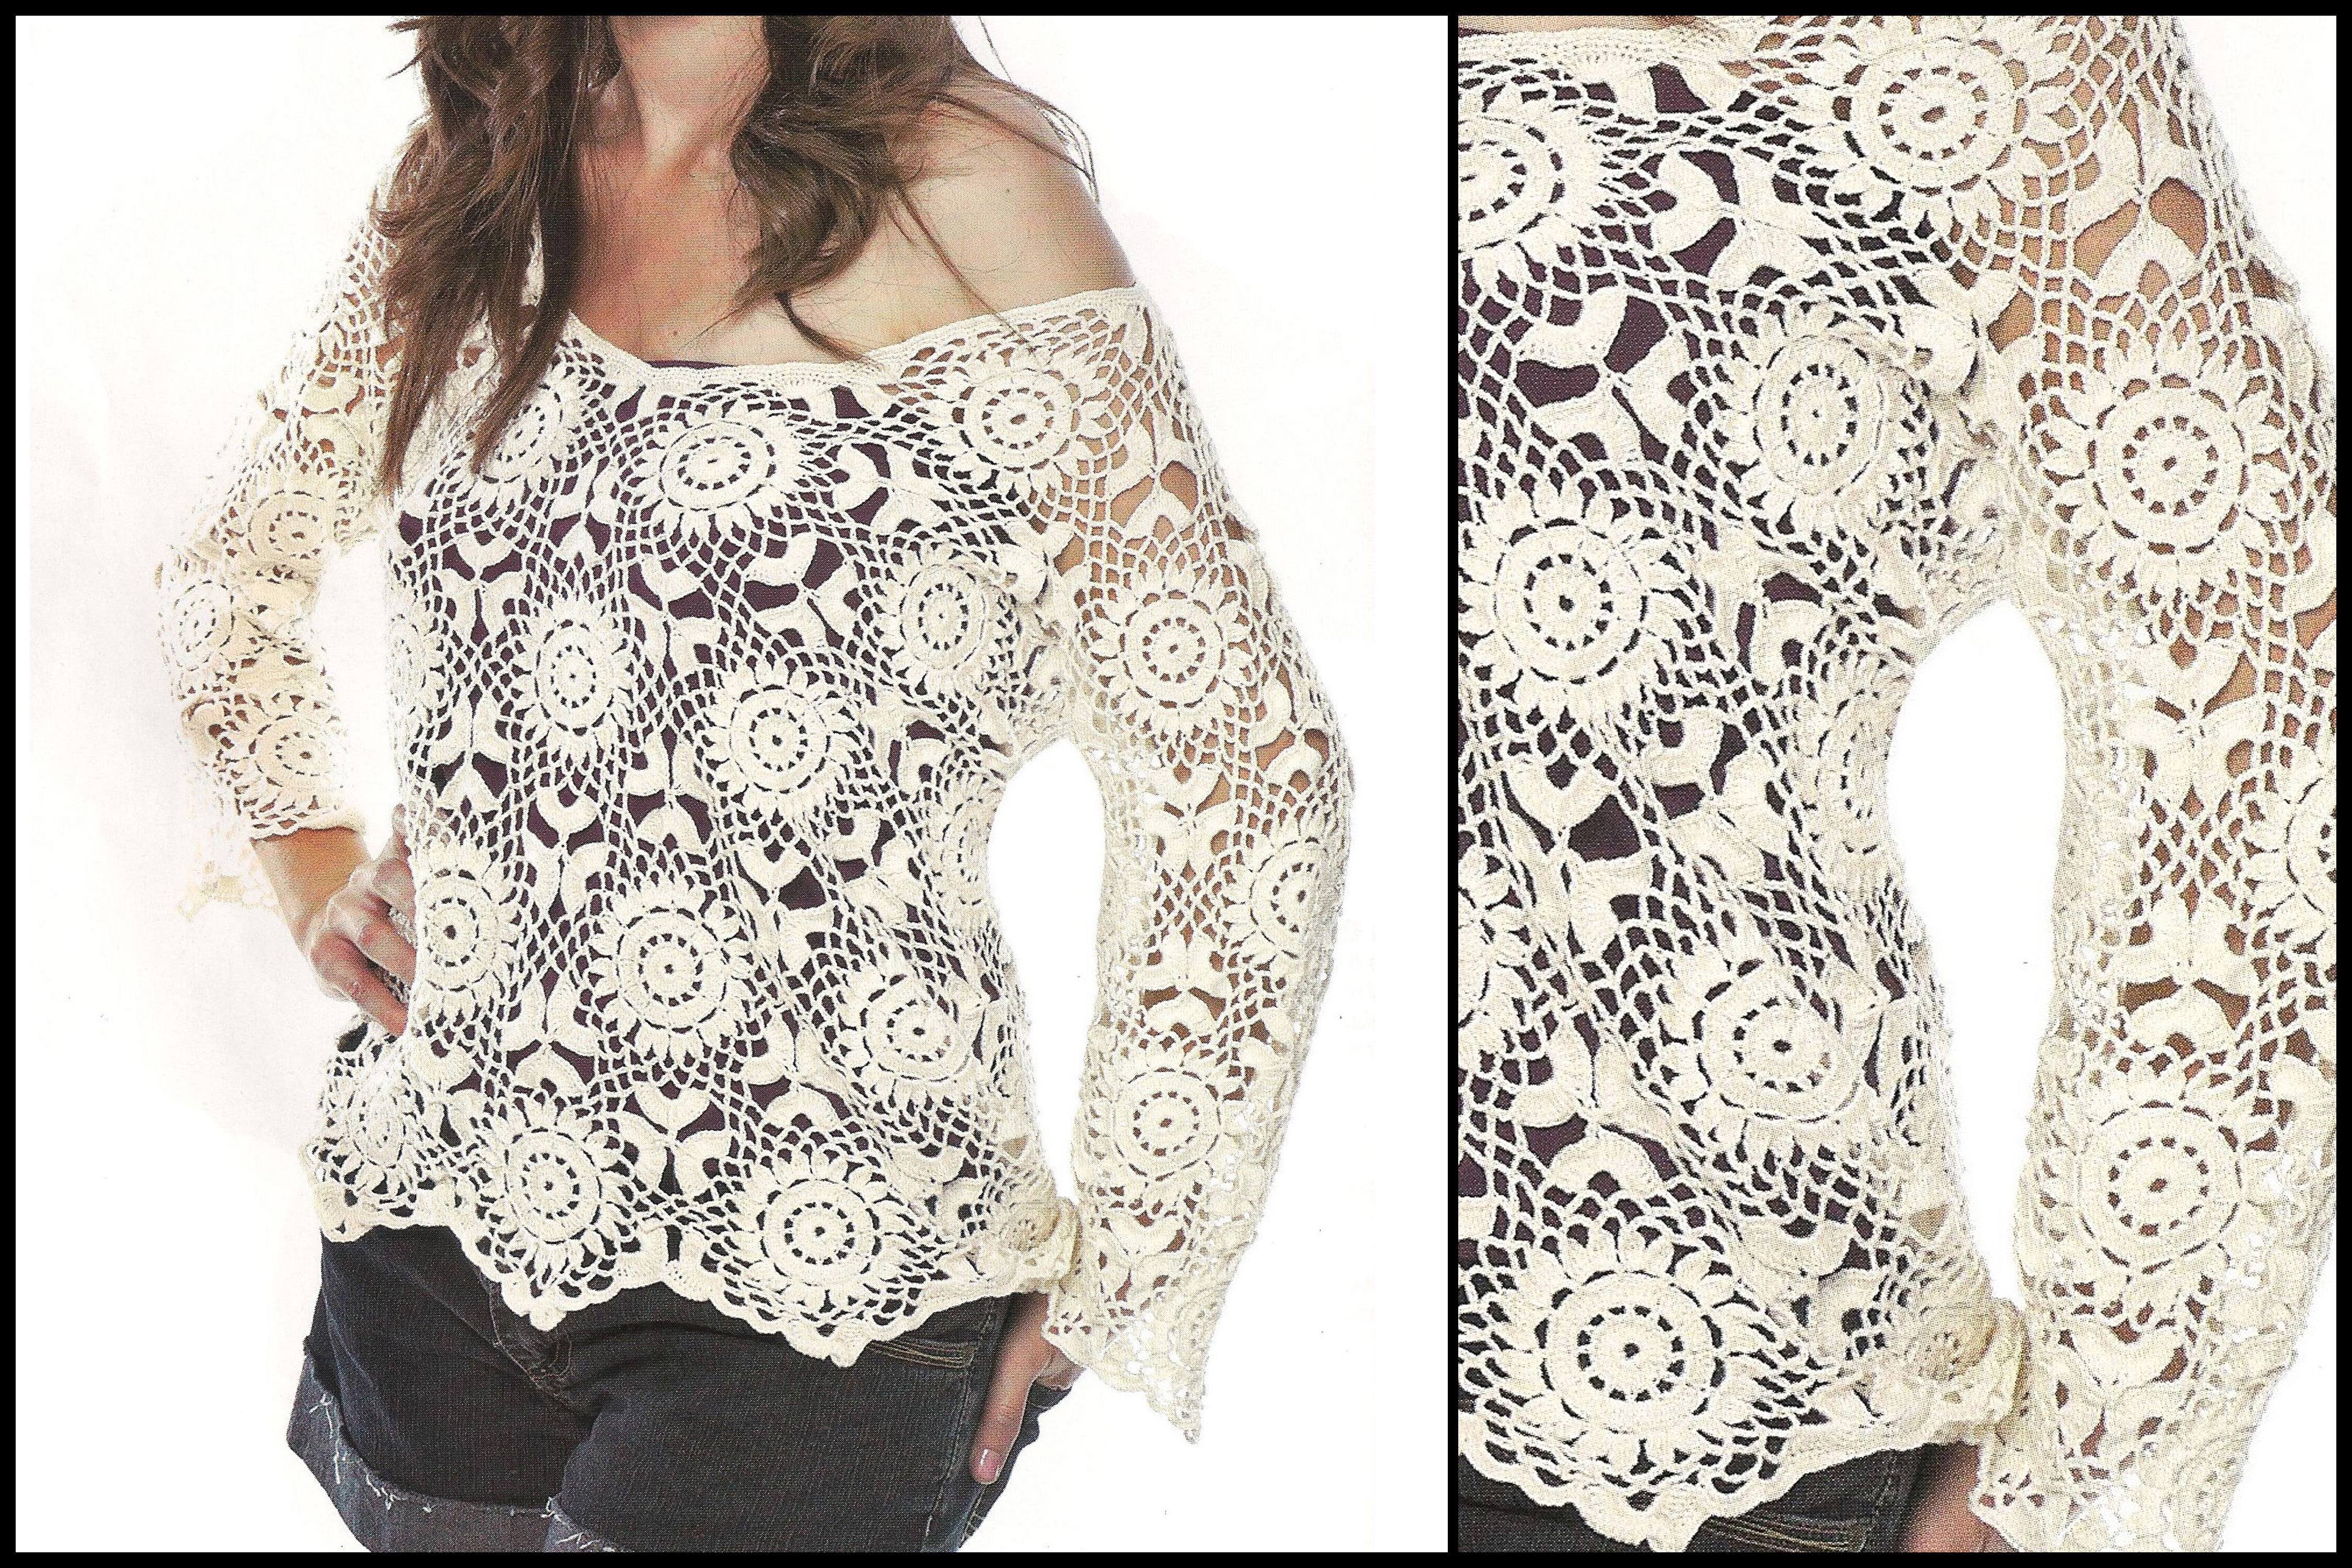 Crochet Lace Patterns Step By Step : For this beautiful crochet blouse pattern free - See the ...